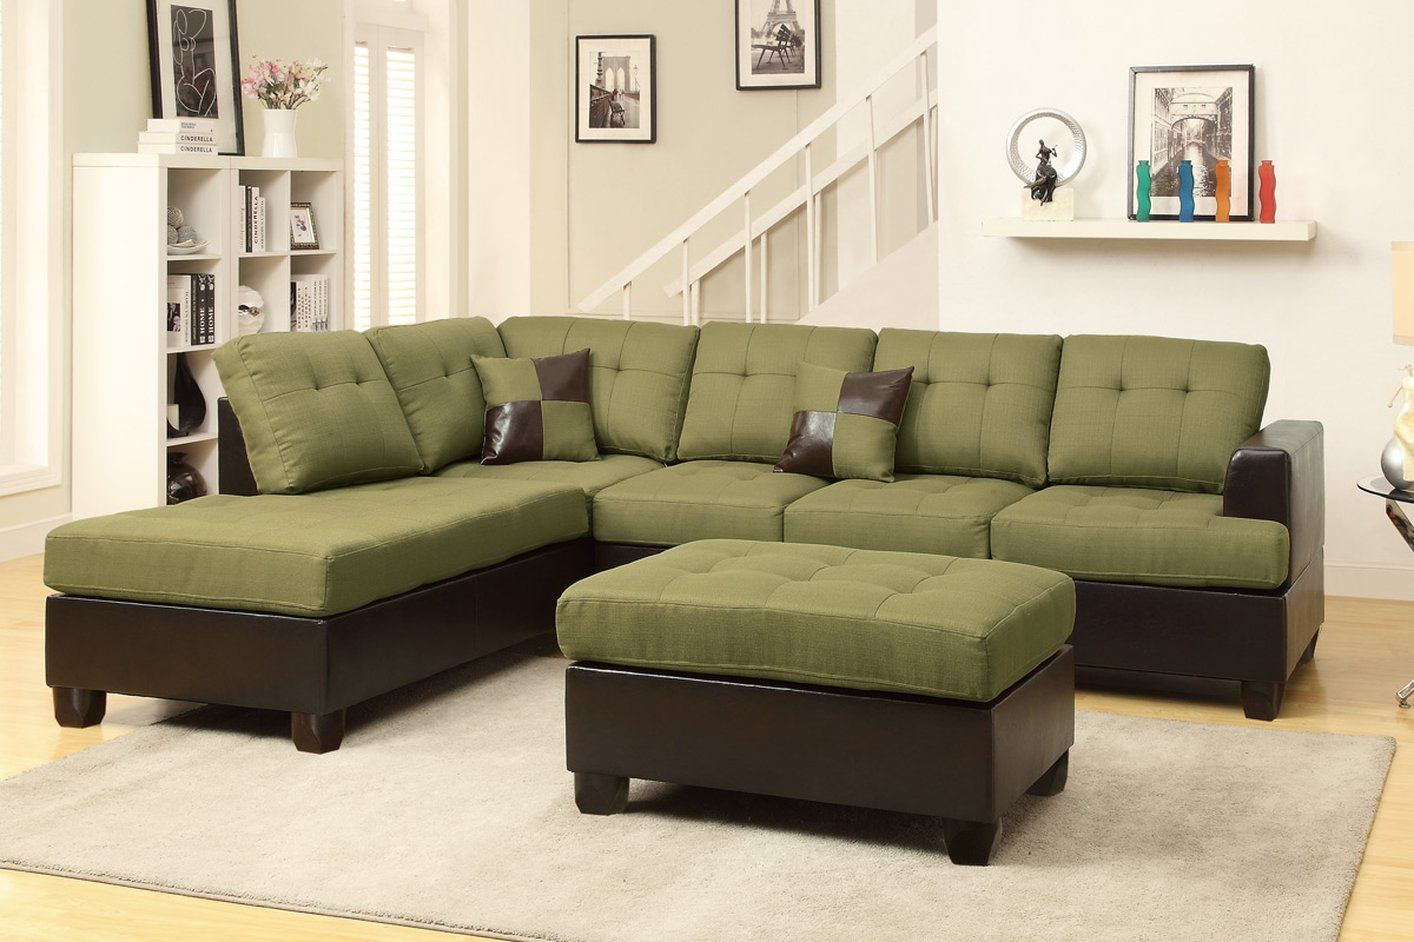 ... Sectional Sofa and Ottoman - Steal-A-Sofa Furniture Outlet Los Angeles